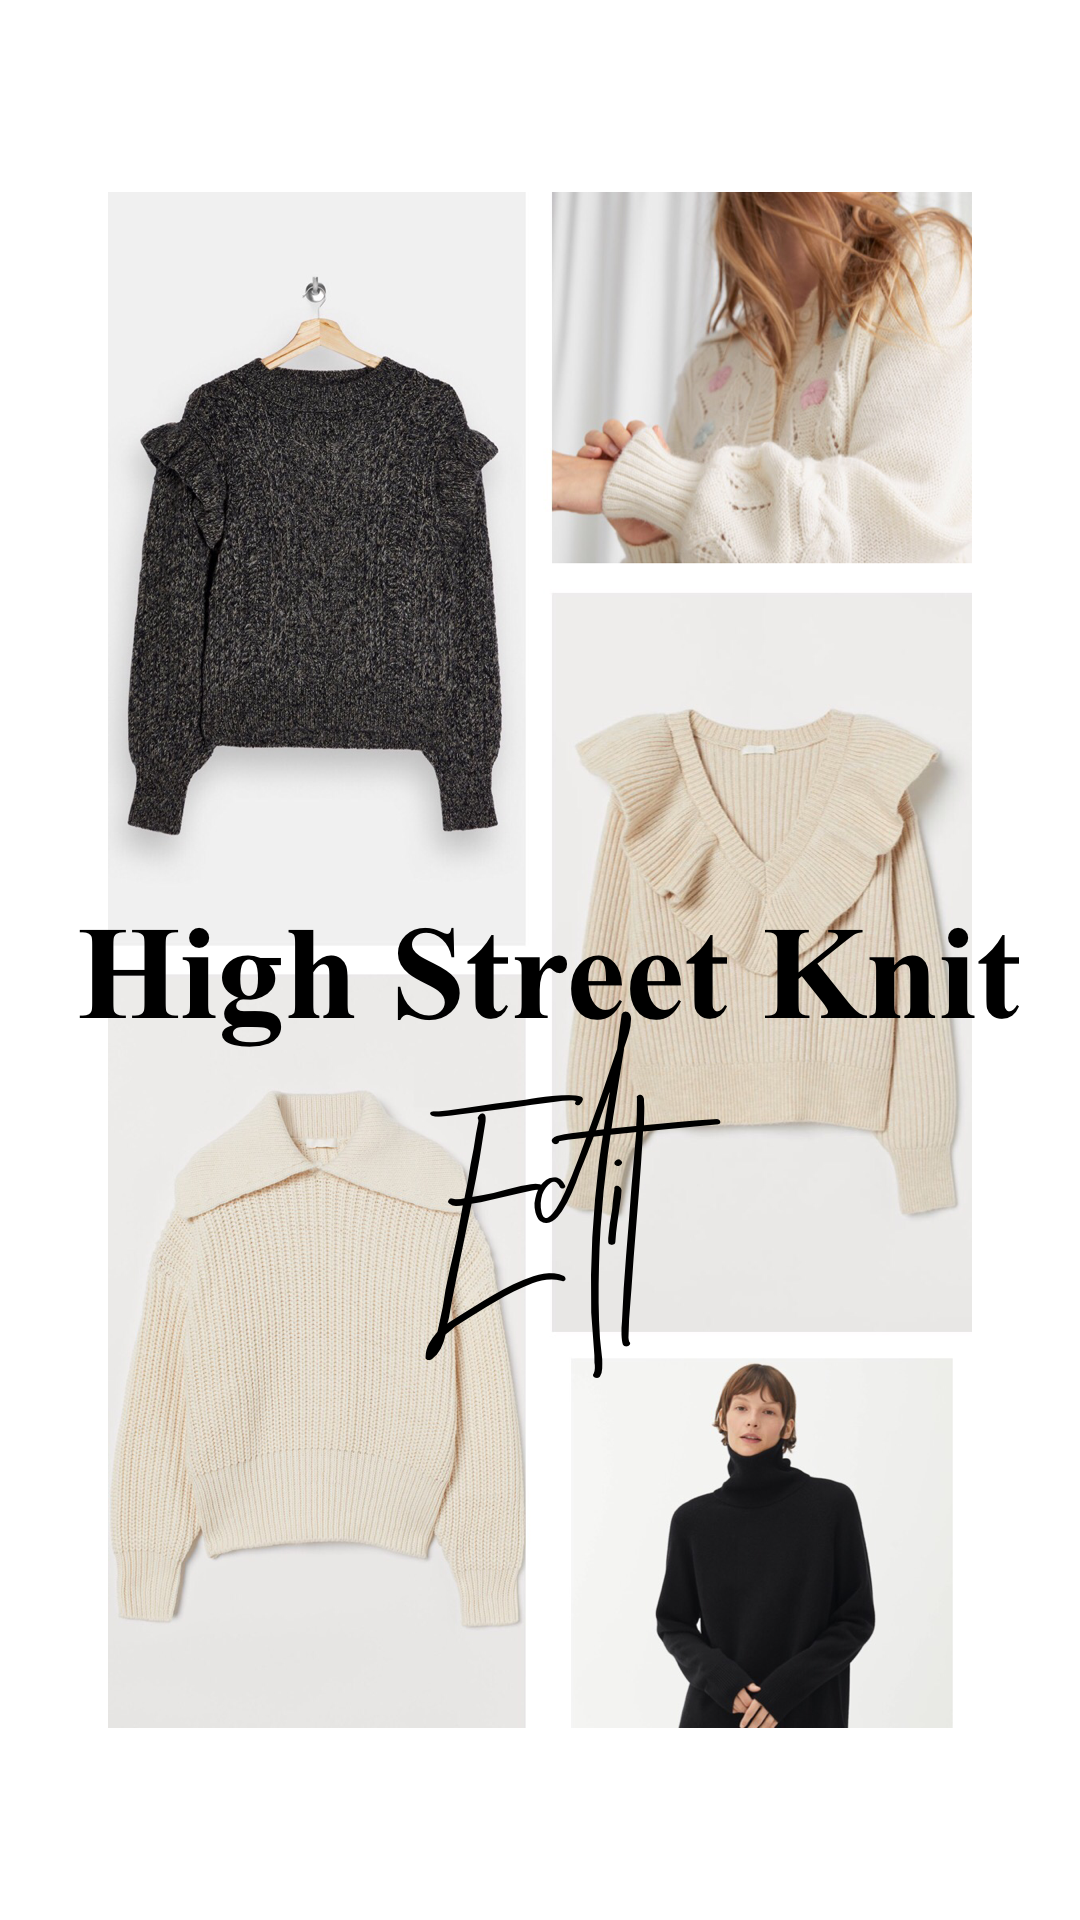 Best High Street Knit Wear This Winter